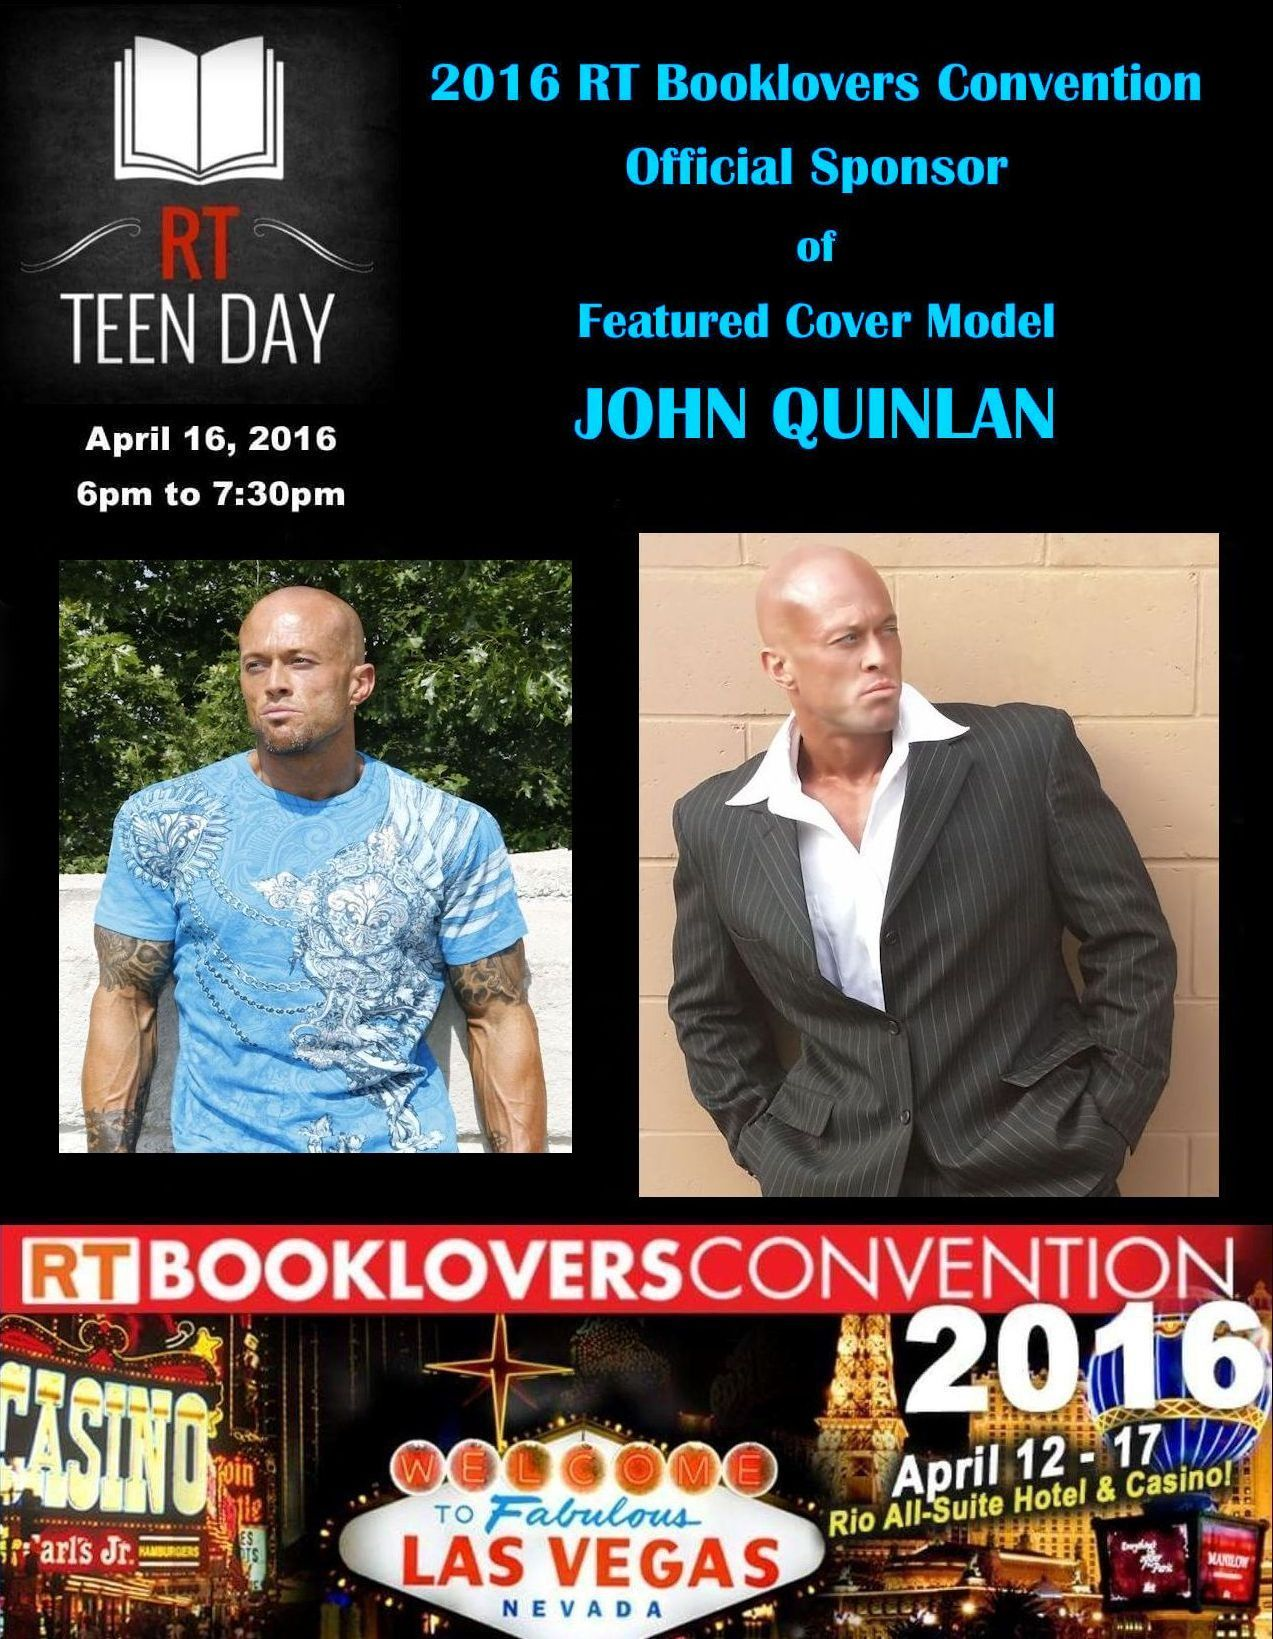 2016 RT Convention Las Vegas Featured Cover Model John Joseph Quinlan by Roxanna Rose #Johnuinlan